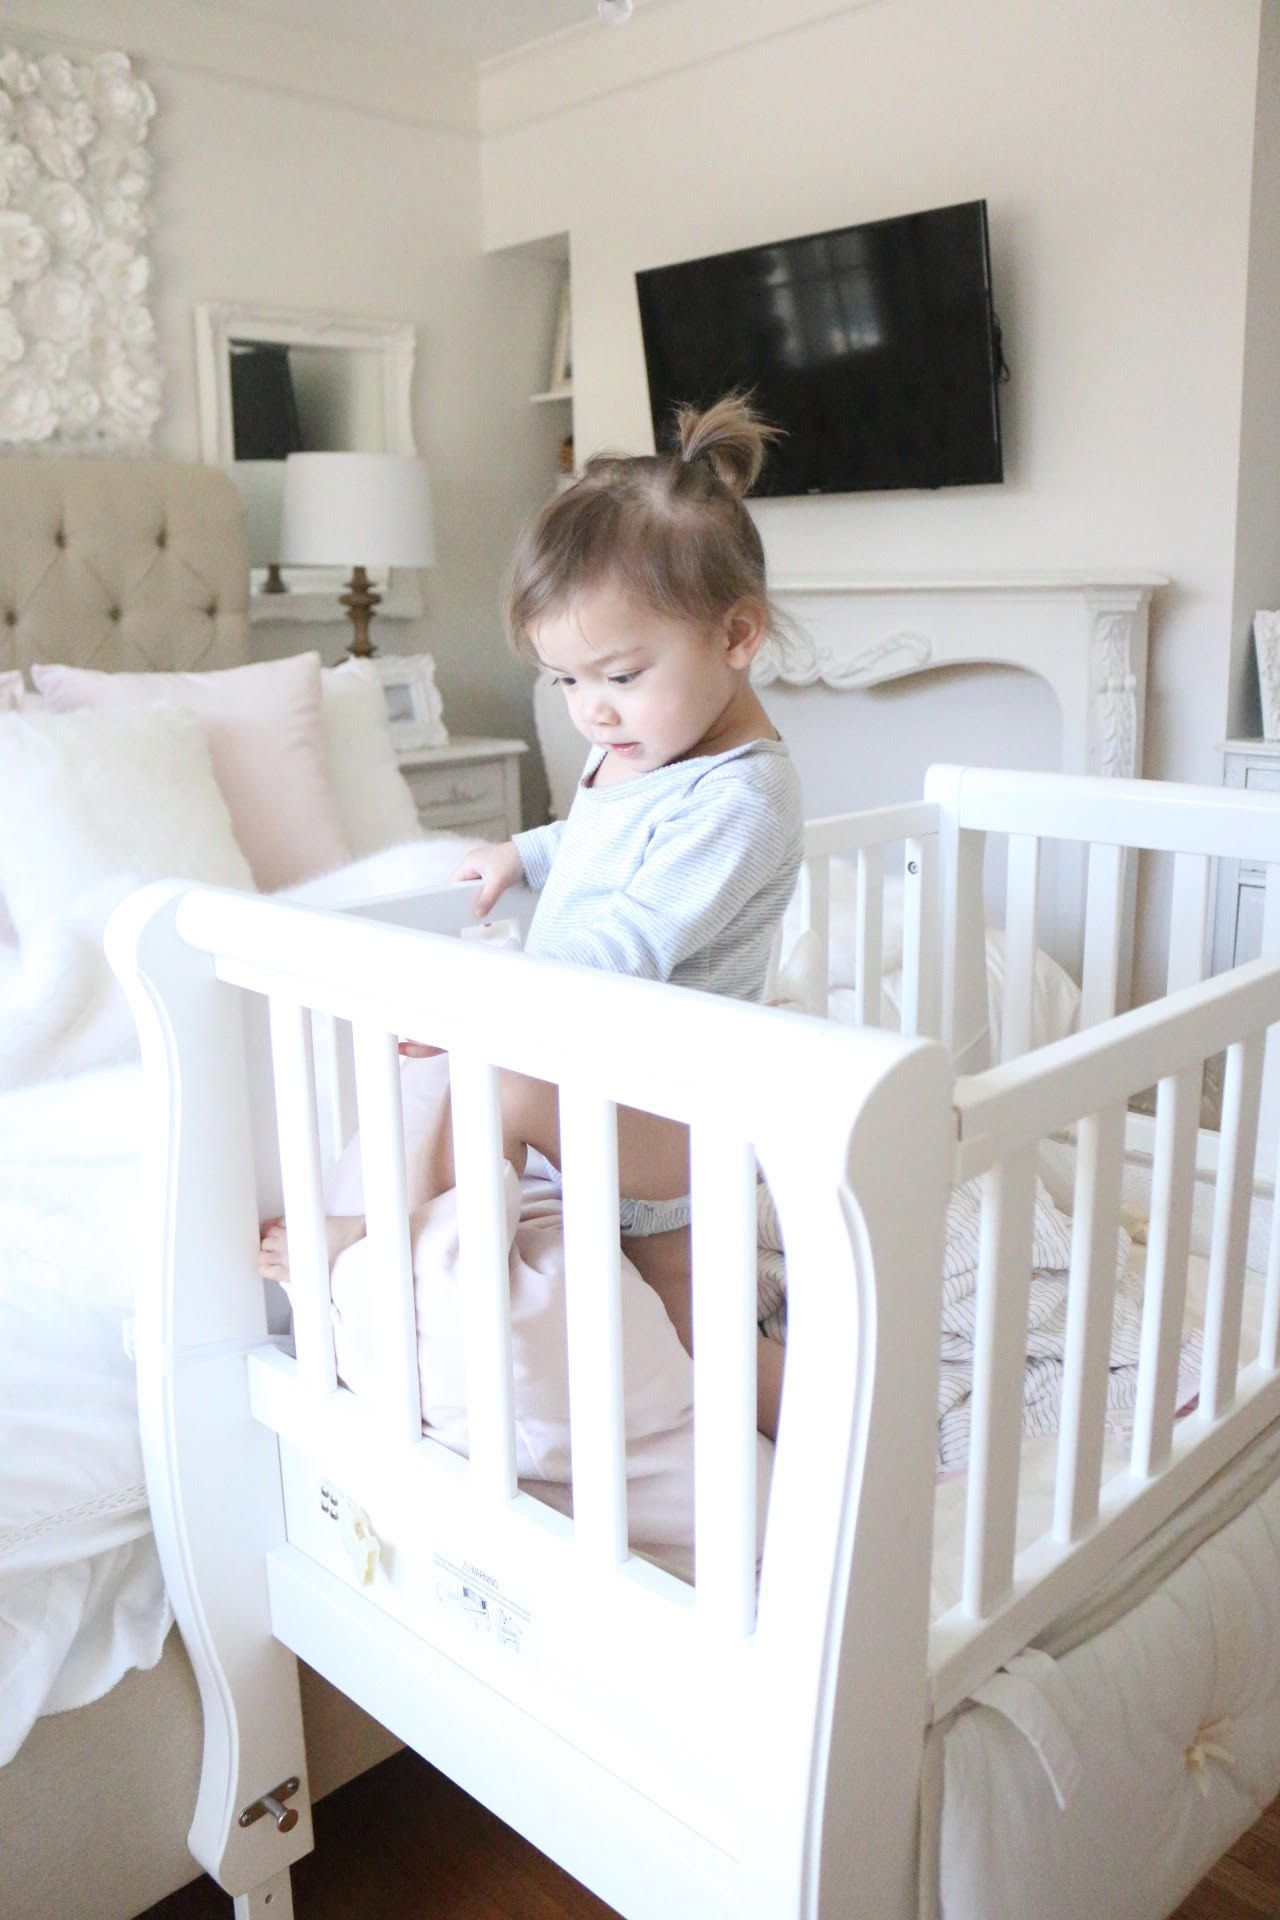 Most recommended crib for babies - Co Sleeper Best Crib Best Co Sleep Arms Reach Co